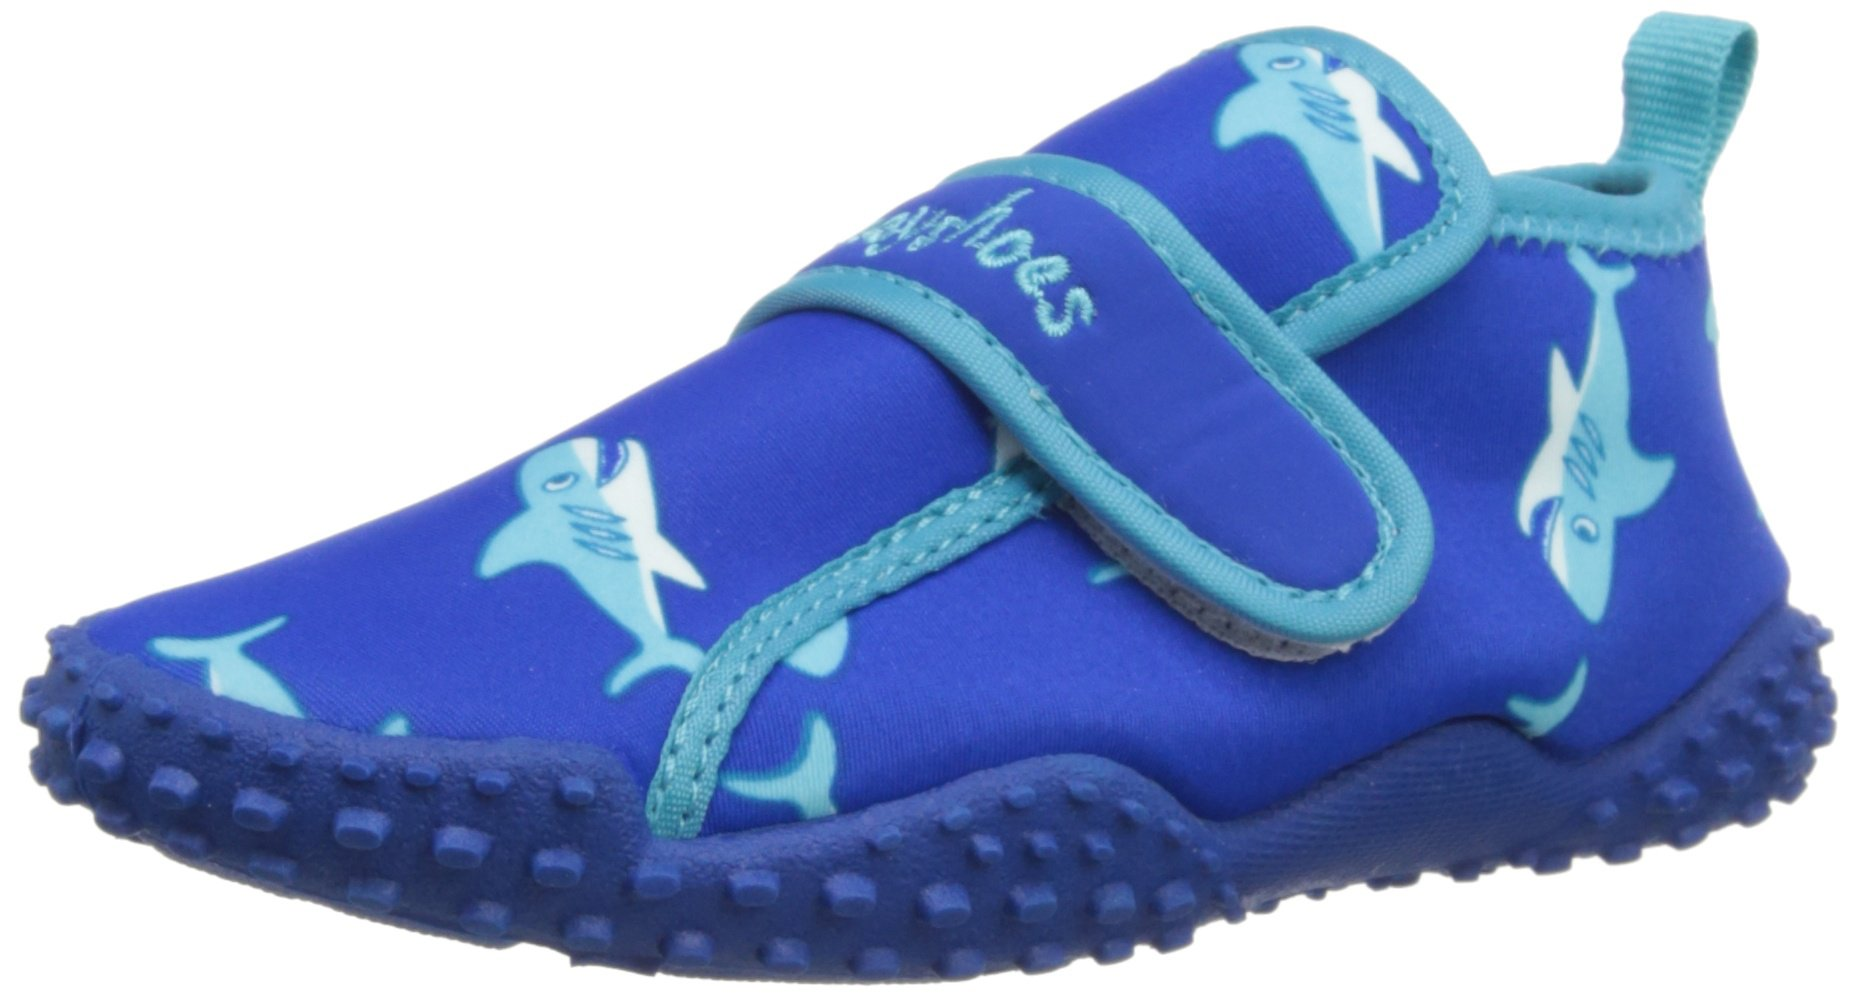 Playshoes Boys UV Protection Shark Collection Aqua Swimming/Beach Shoes (11.5 M US Little Kid)